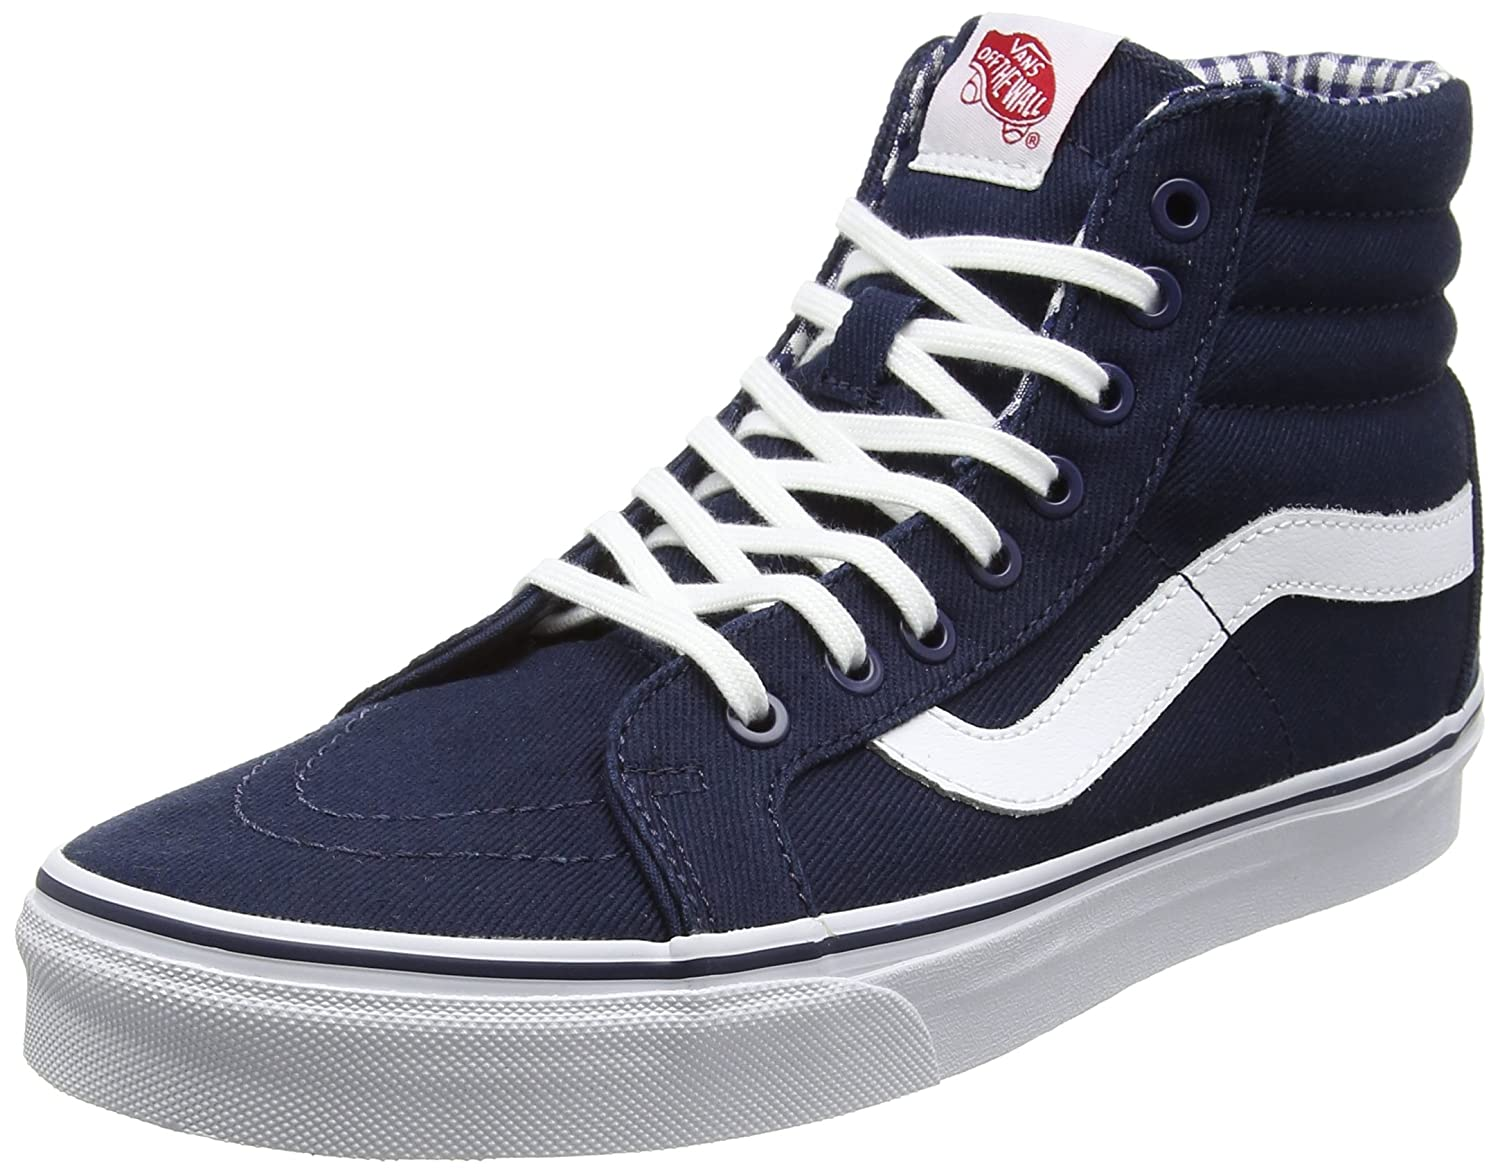 Vans Sk8-Hi Unisex Casual High-Top Skate Shoes, Comfortable and Durable in Signature Waffle Rubber Sole B011JJKL22 7 D(M) US|New York/Yankees/Navy